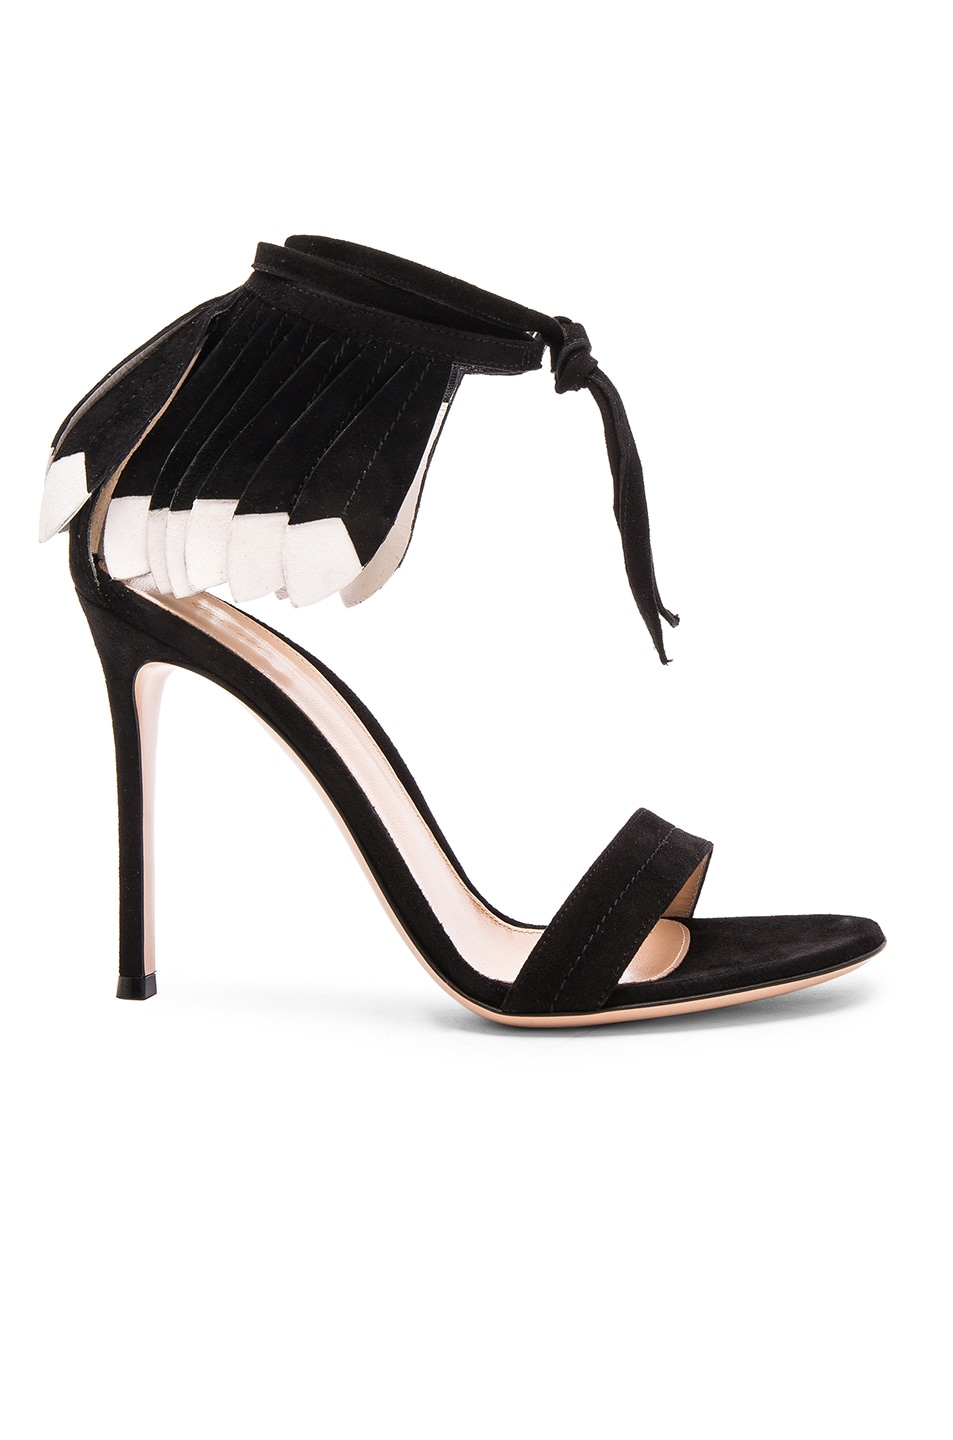 Image 1 of Gianvito Rossi Suede Feather Sandals in Black & White